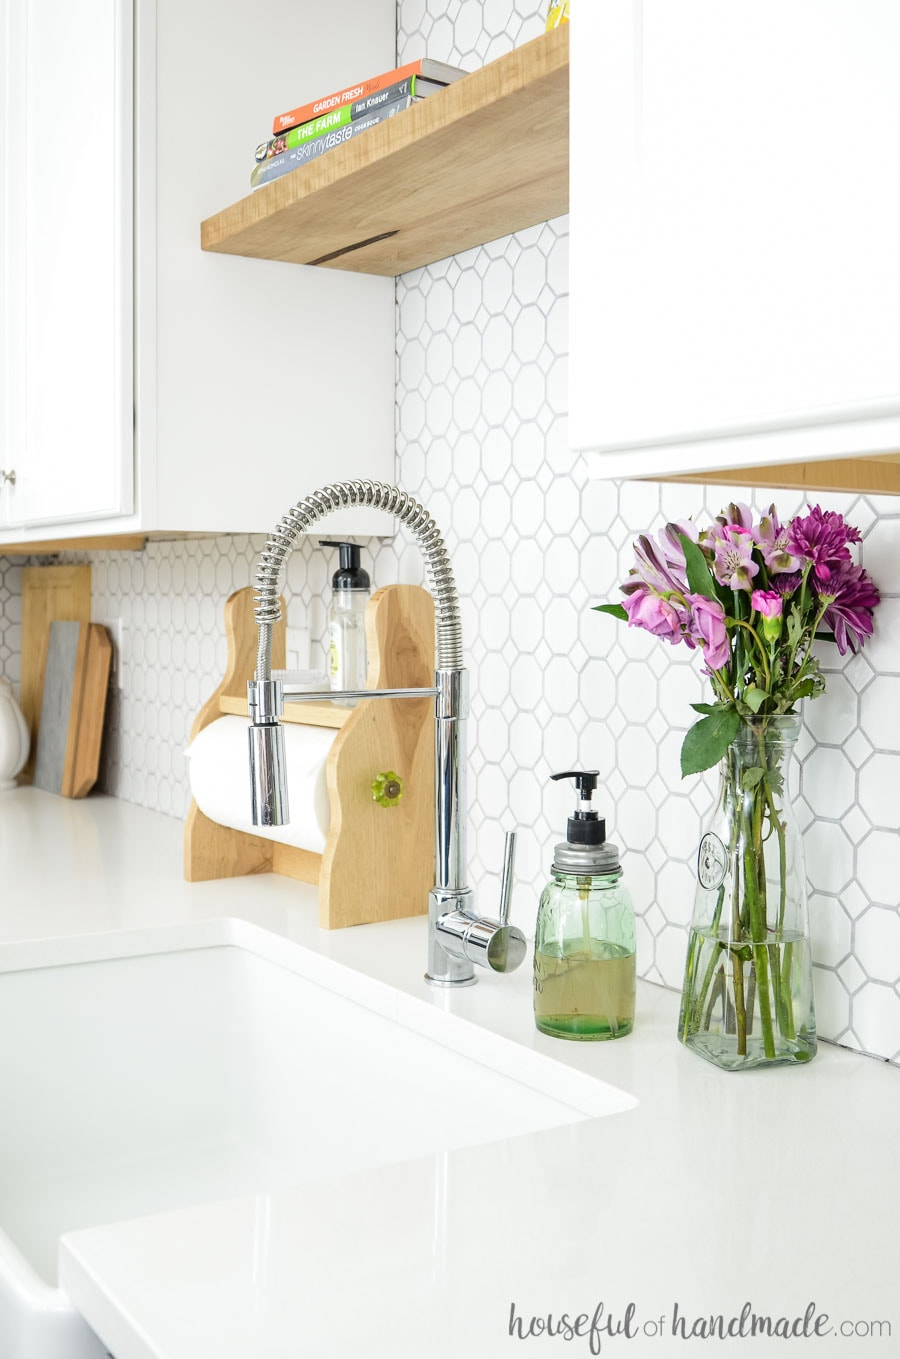 Beautiful apron front sink with white quartz countertops with purple flowers, mason jar soap dispenser and wood farmhouse paper towel holder